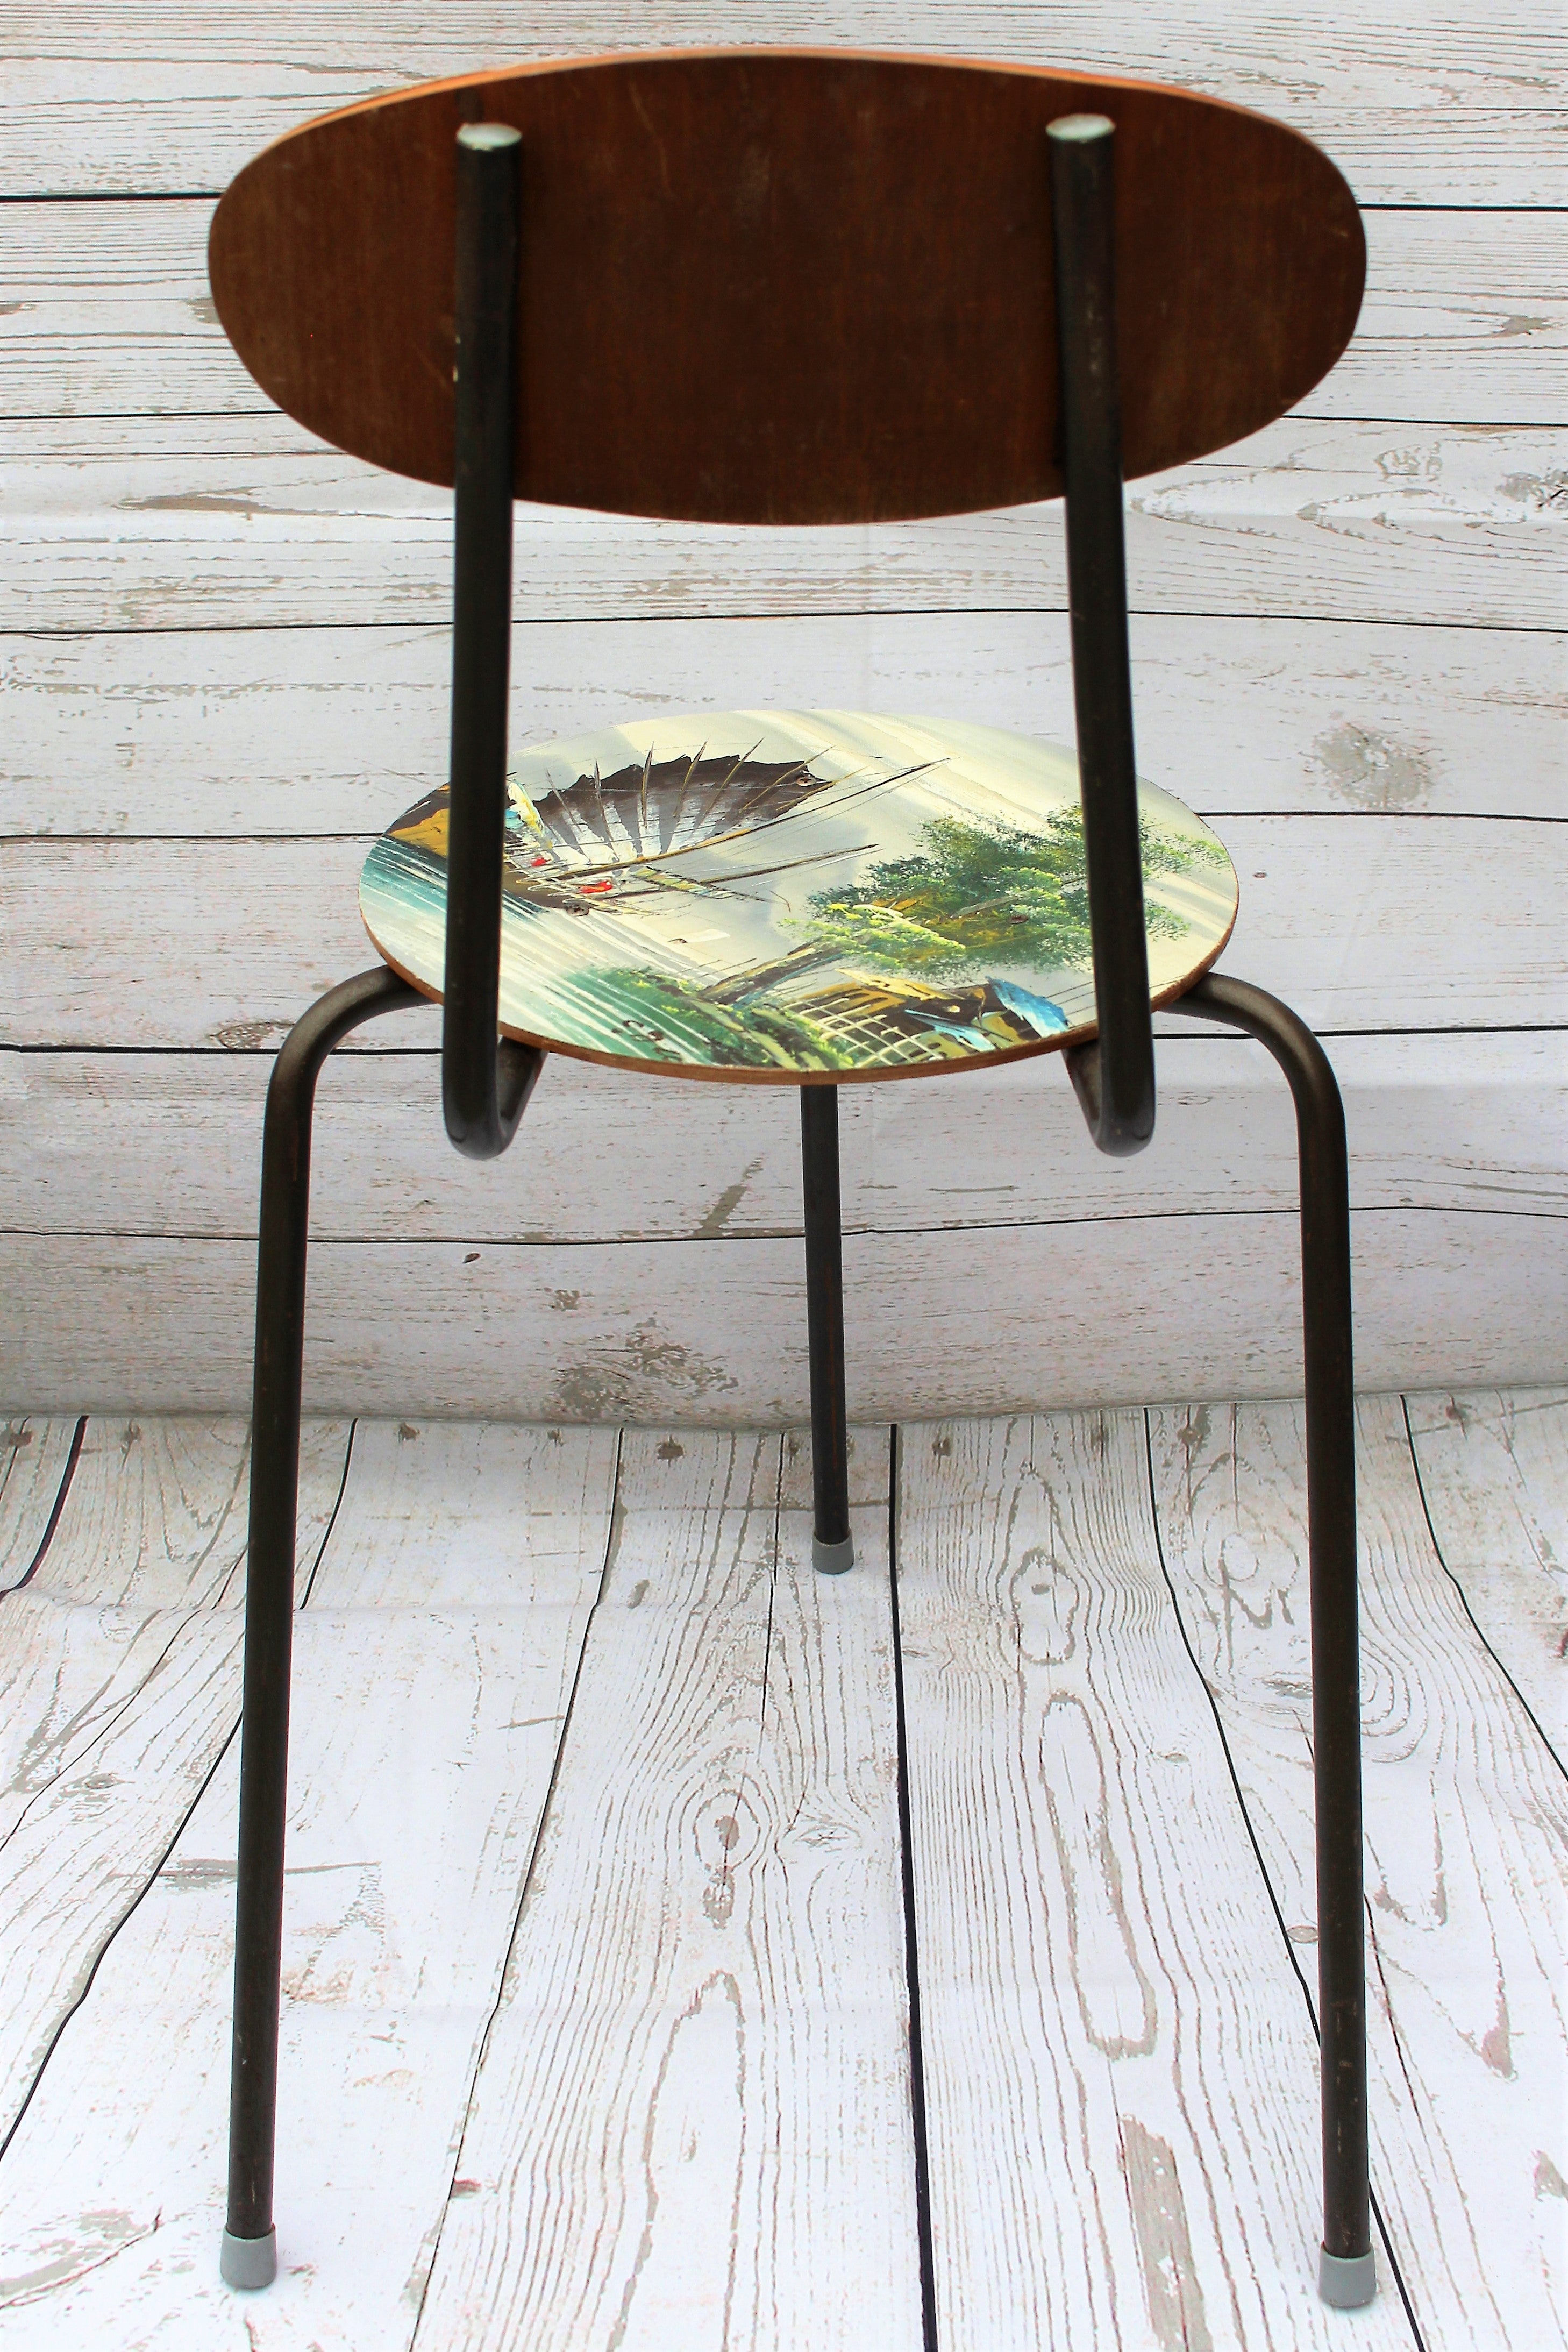 Vintage 3 Legged Chair With Oil Painting